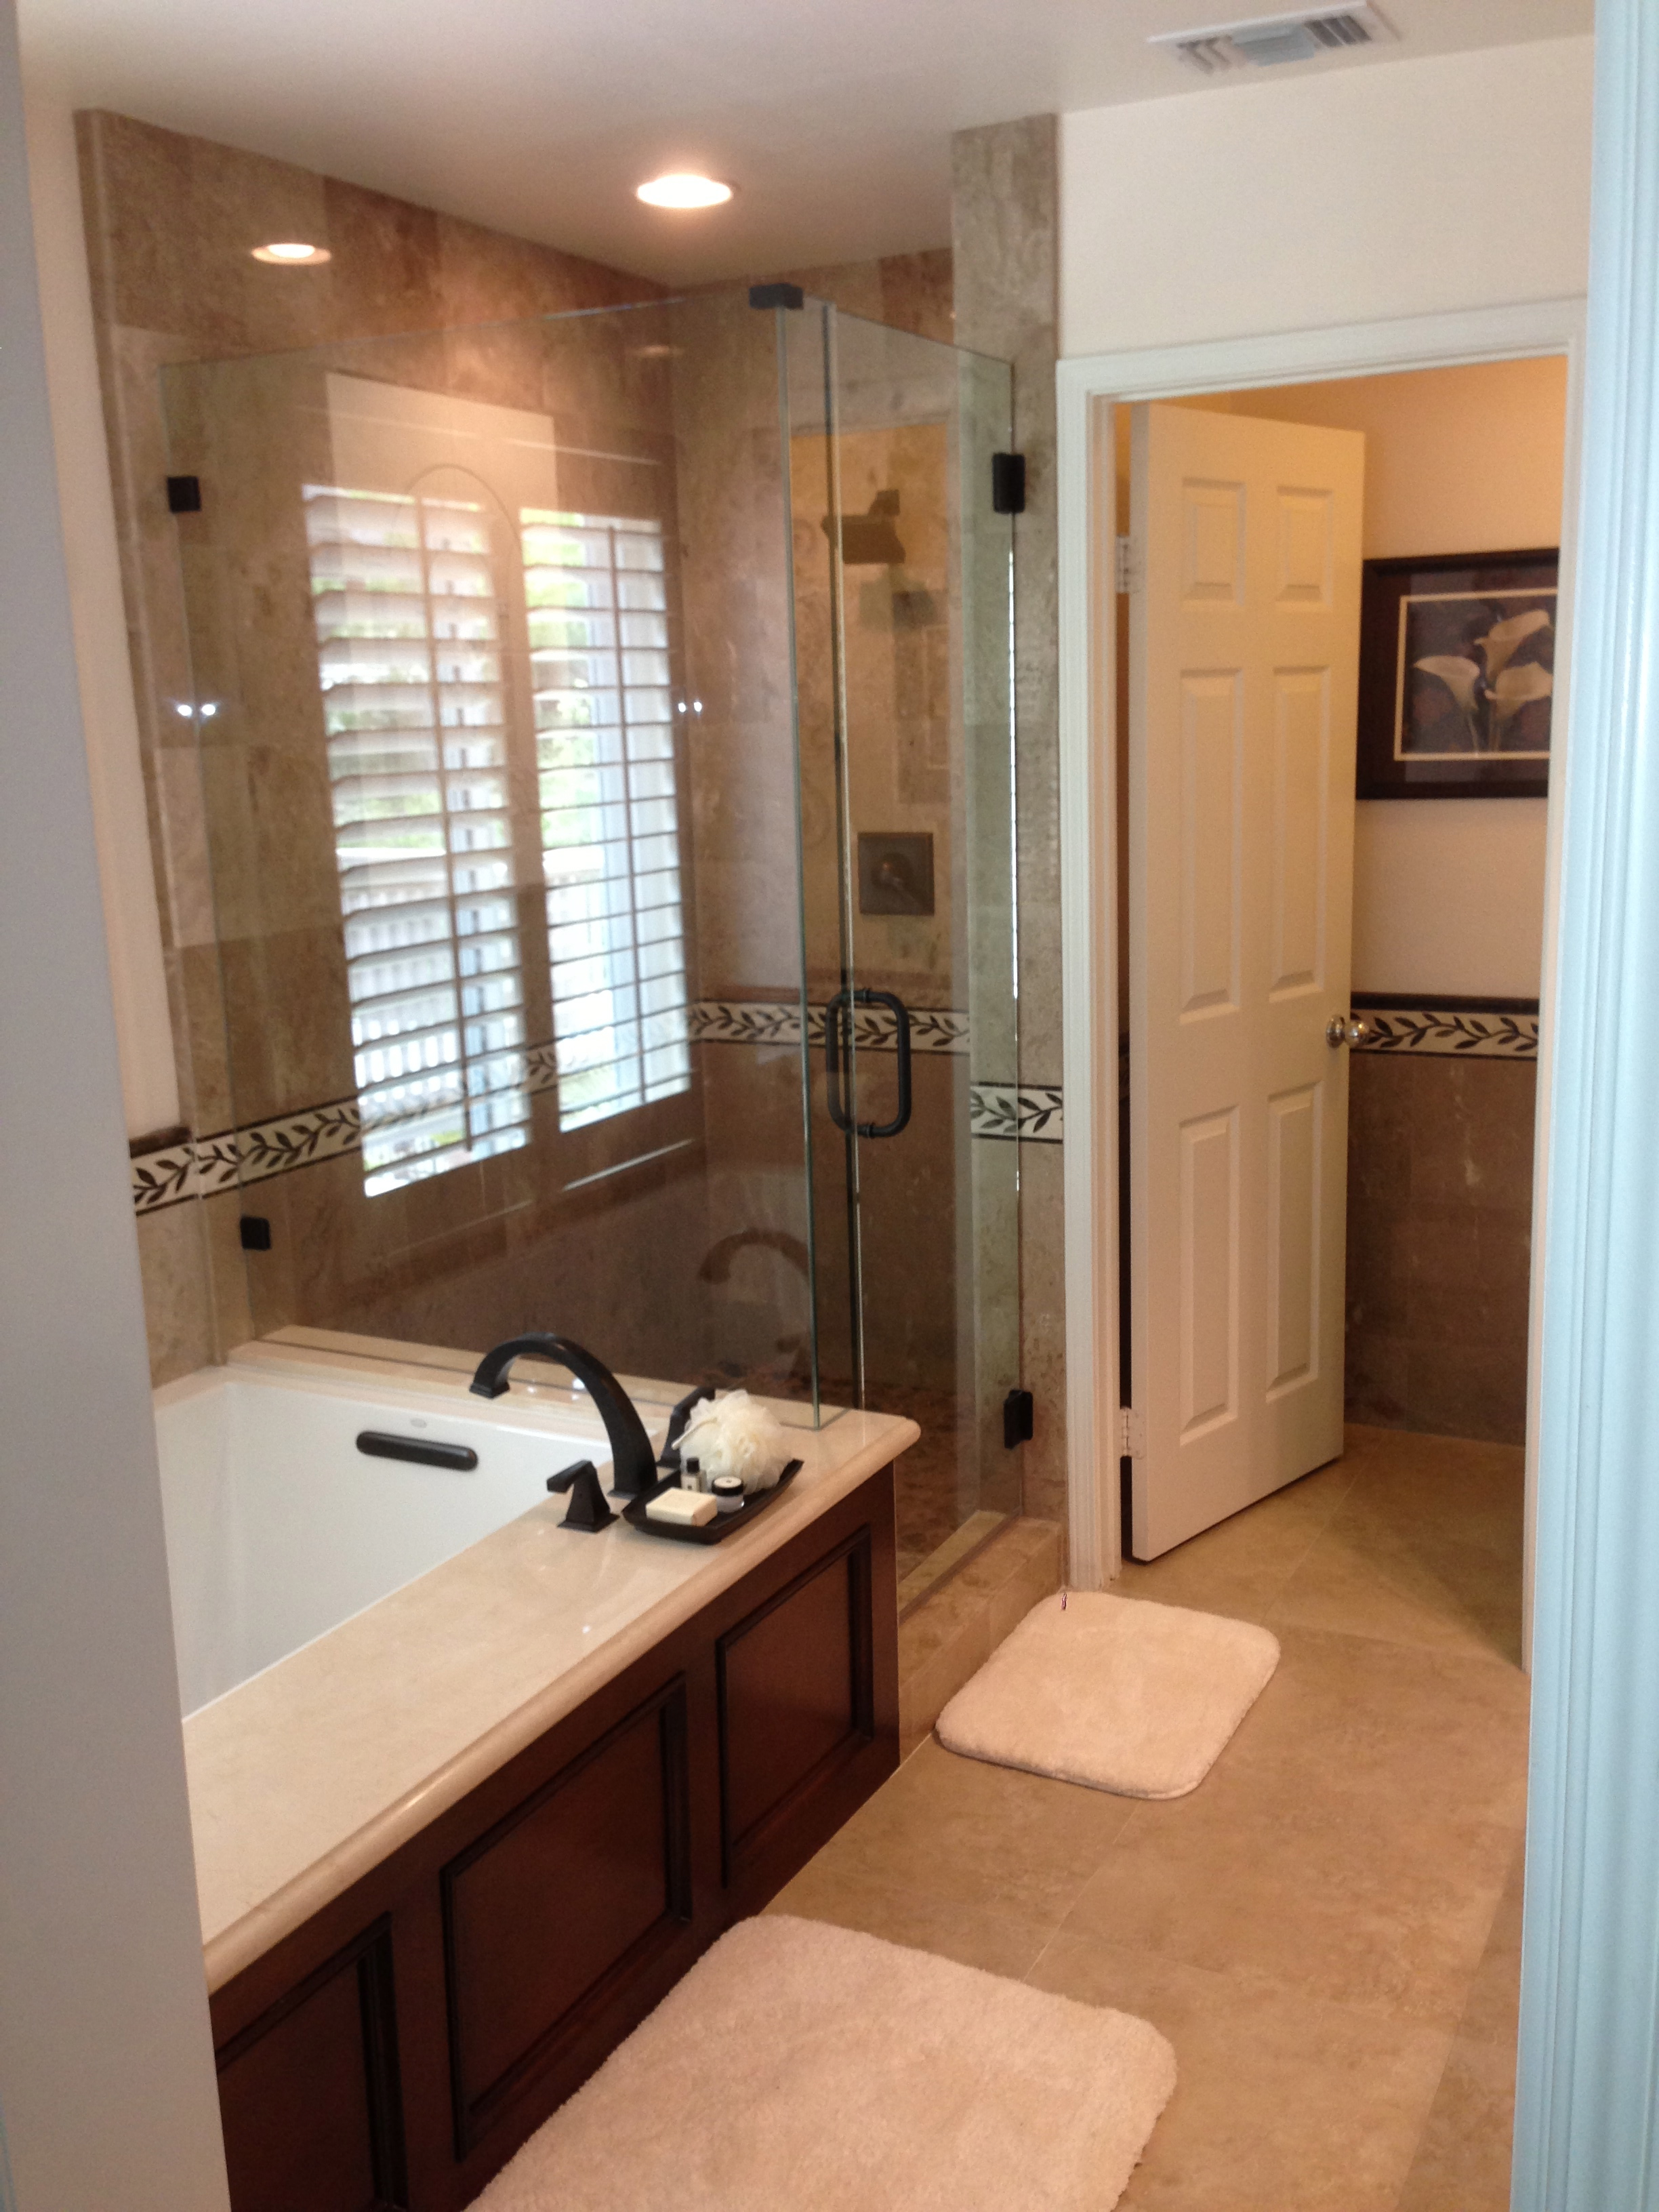 bathroom remodeling - Bathroom Remodel Return On Investment